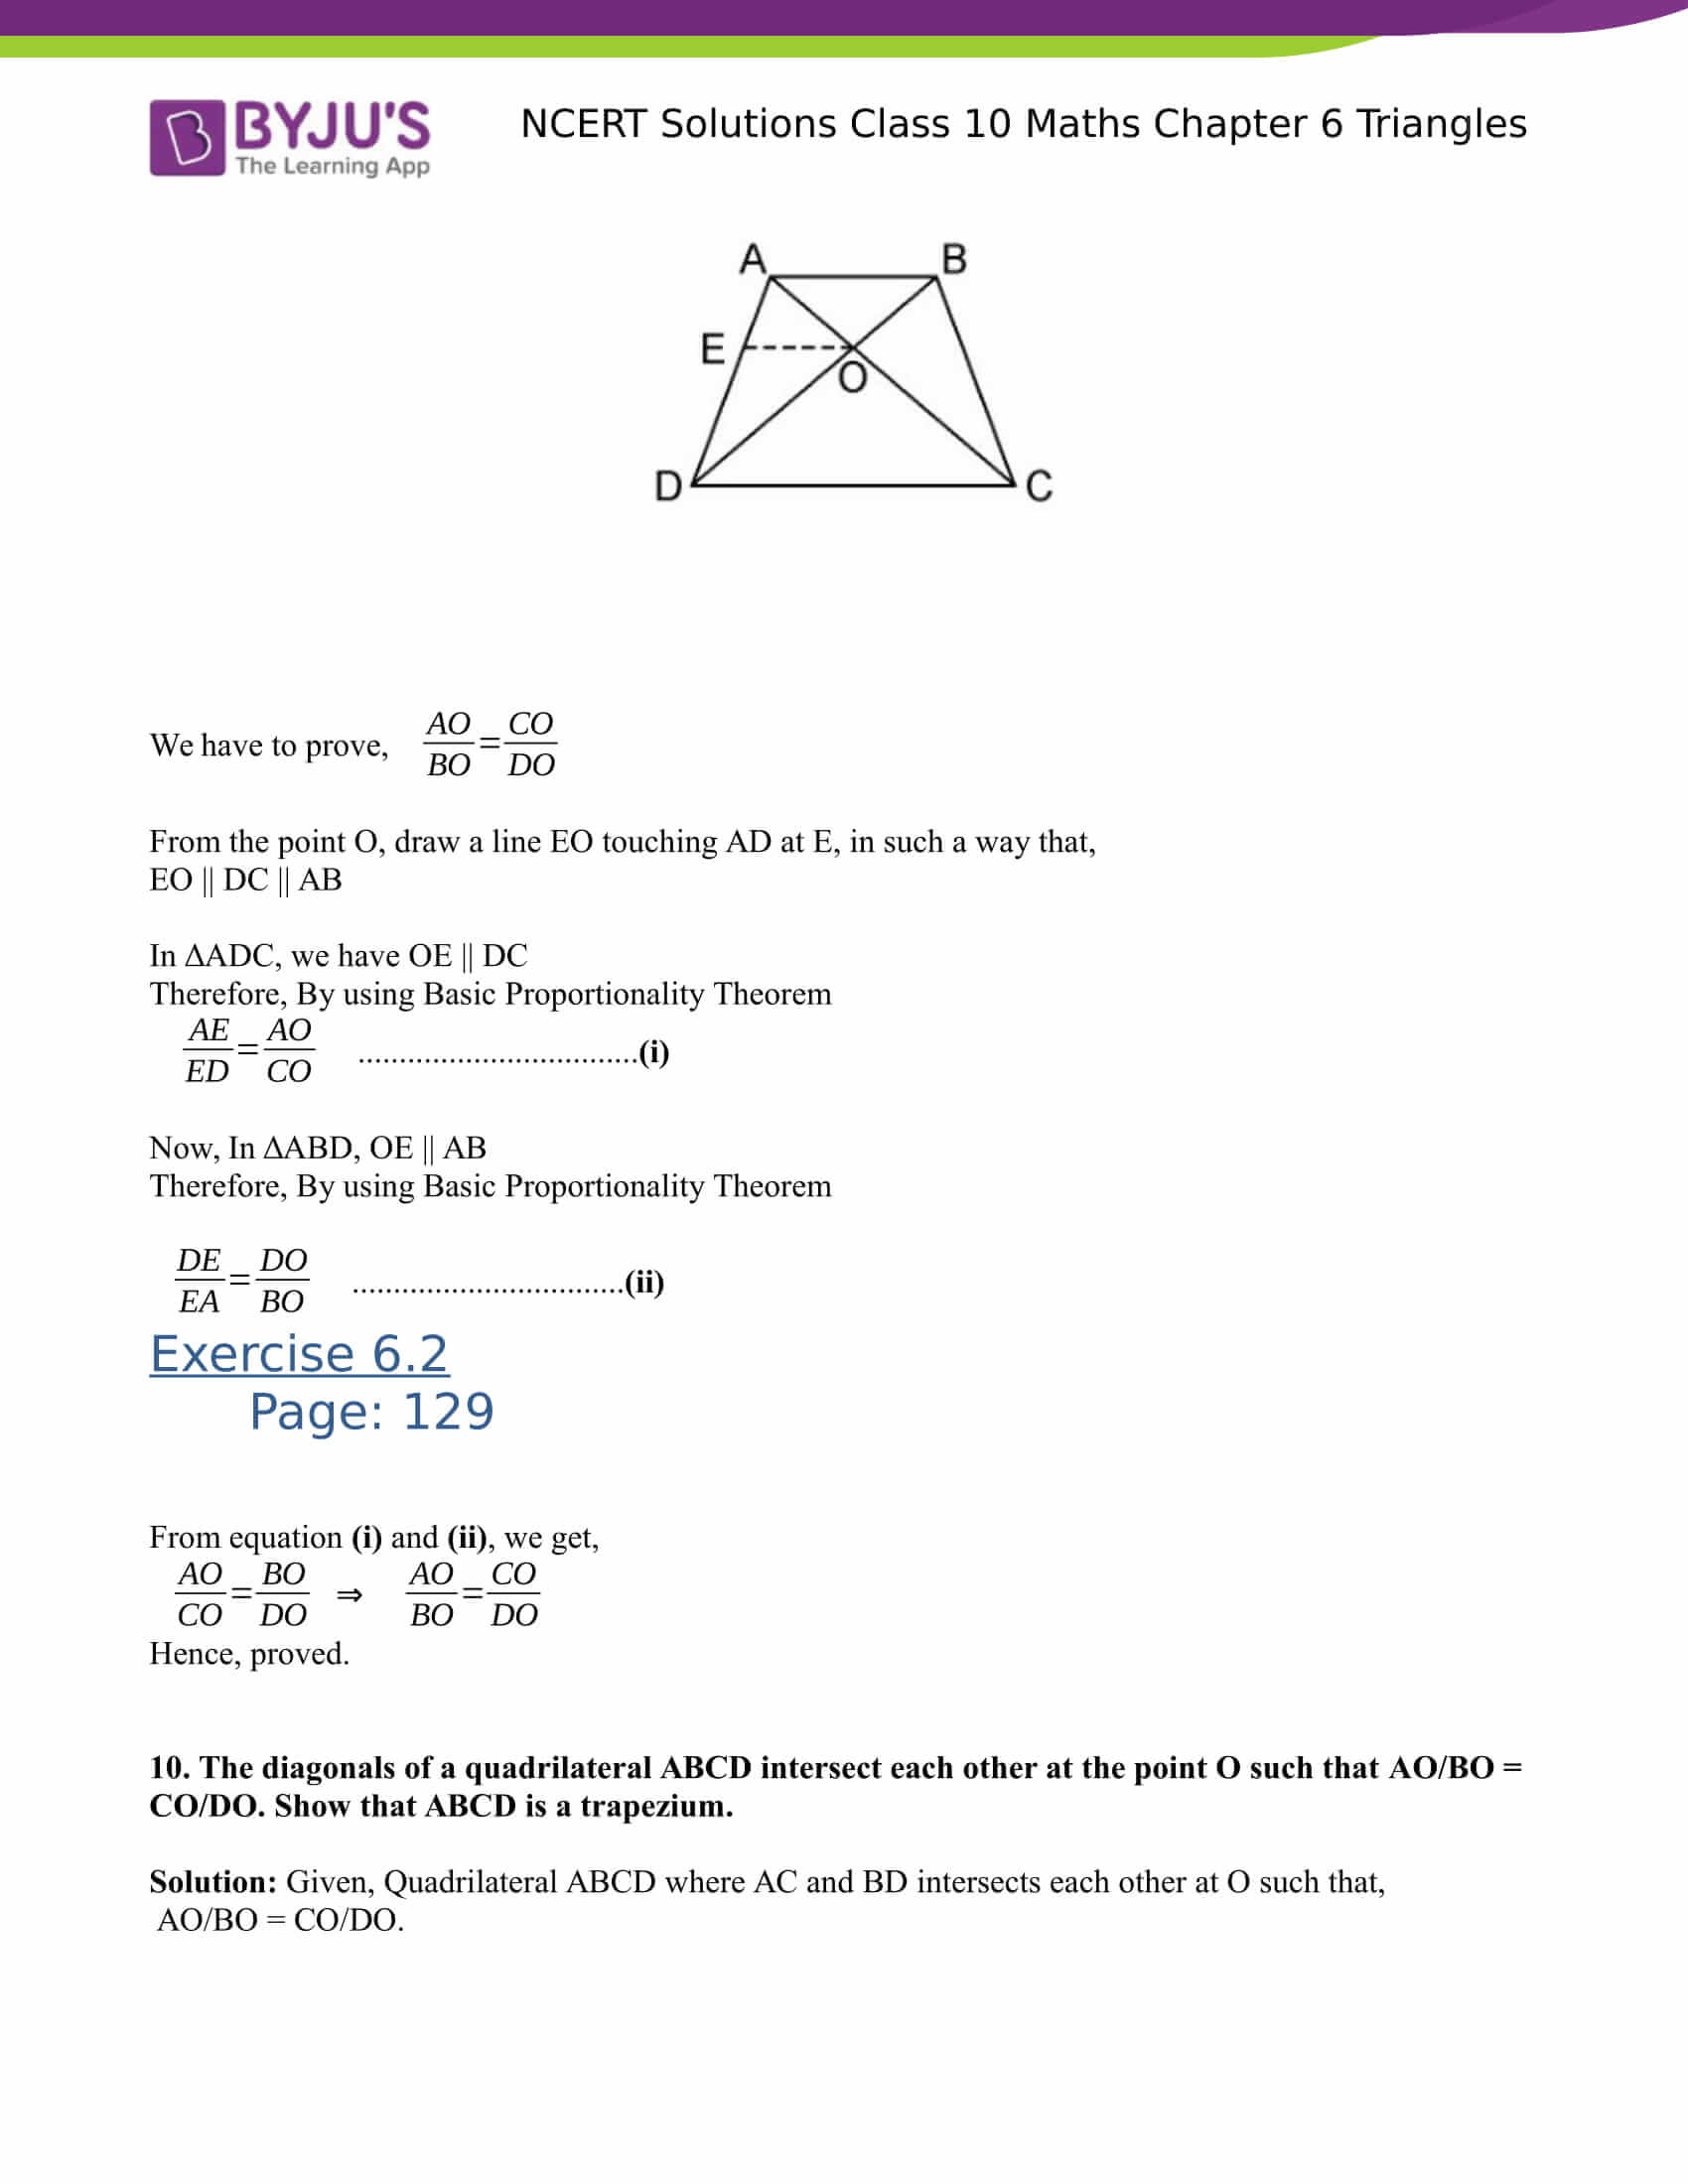 NCERT Solutions for class 10 Maths Chapter 6 Triangles Part 10